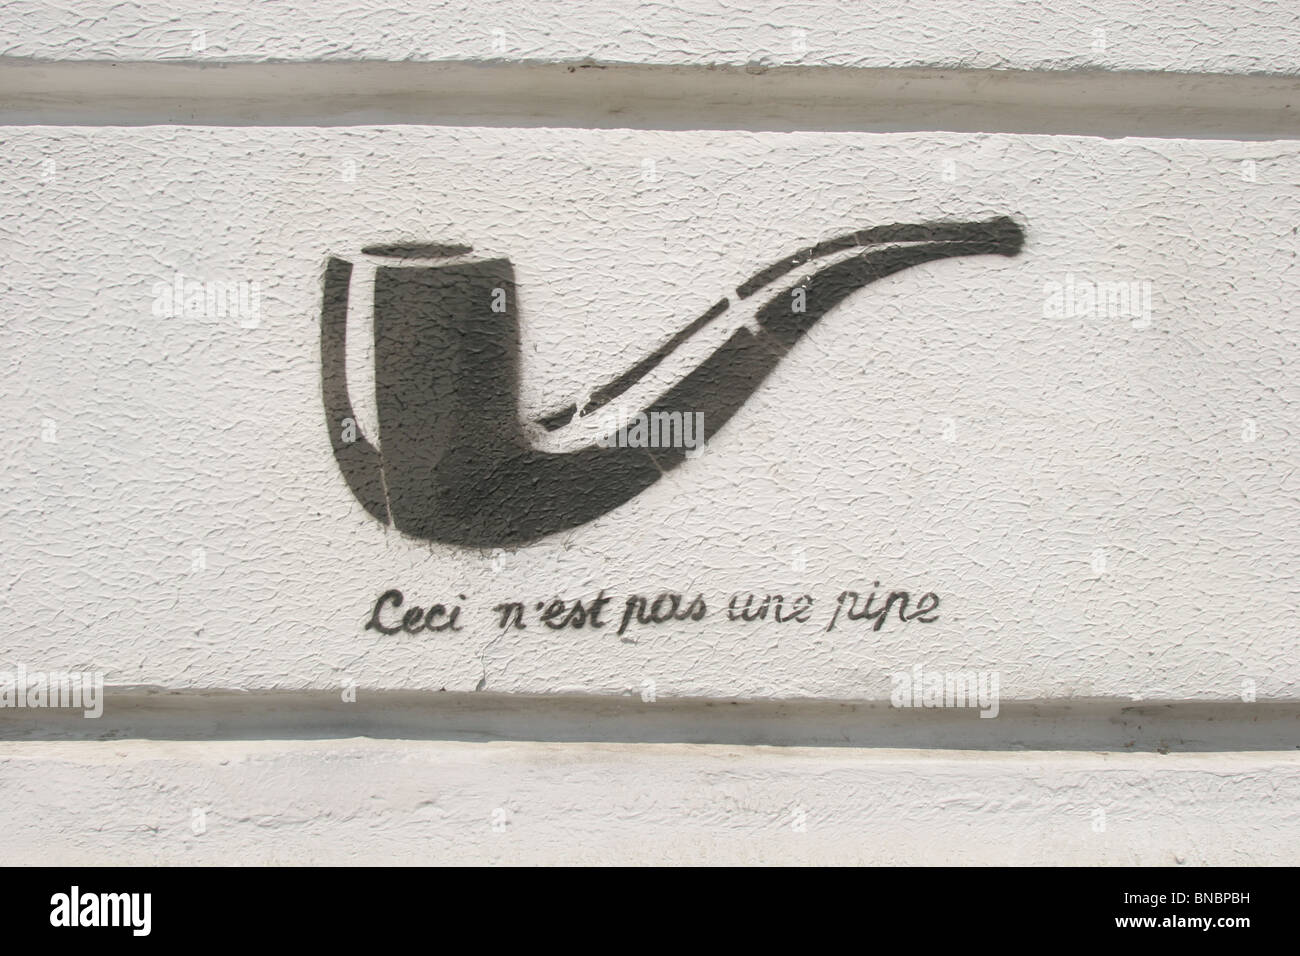 Stenciled graffiti art representation of Rene Magritte's surrealist masterpiece 'Ceci n'est pas une - Stock Image